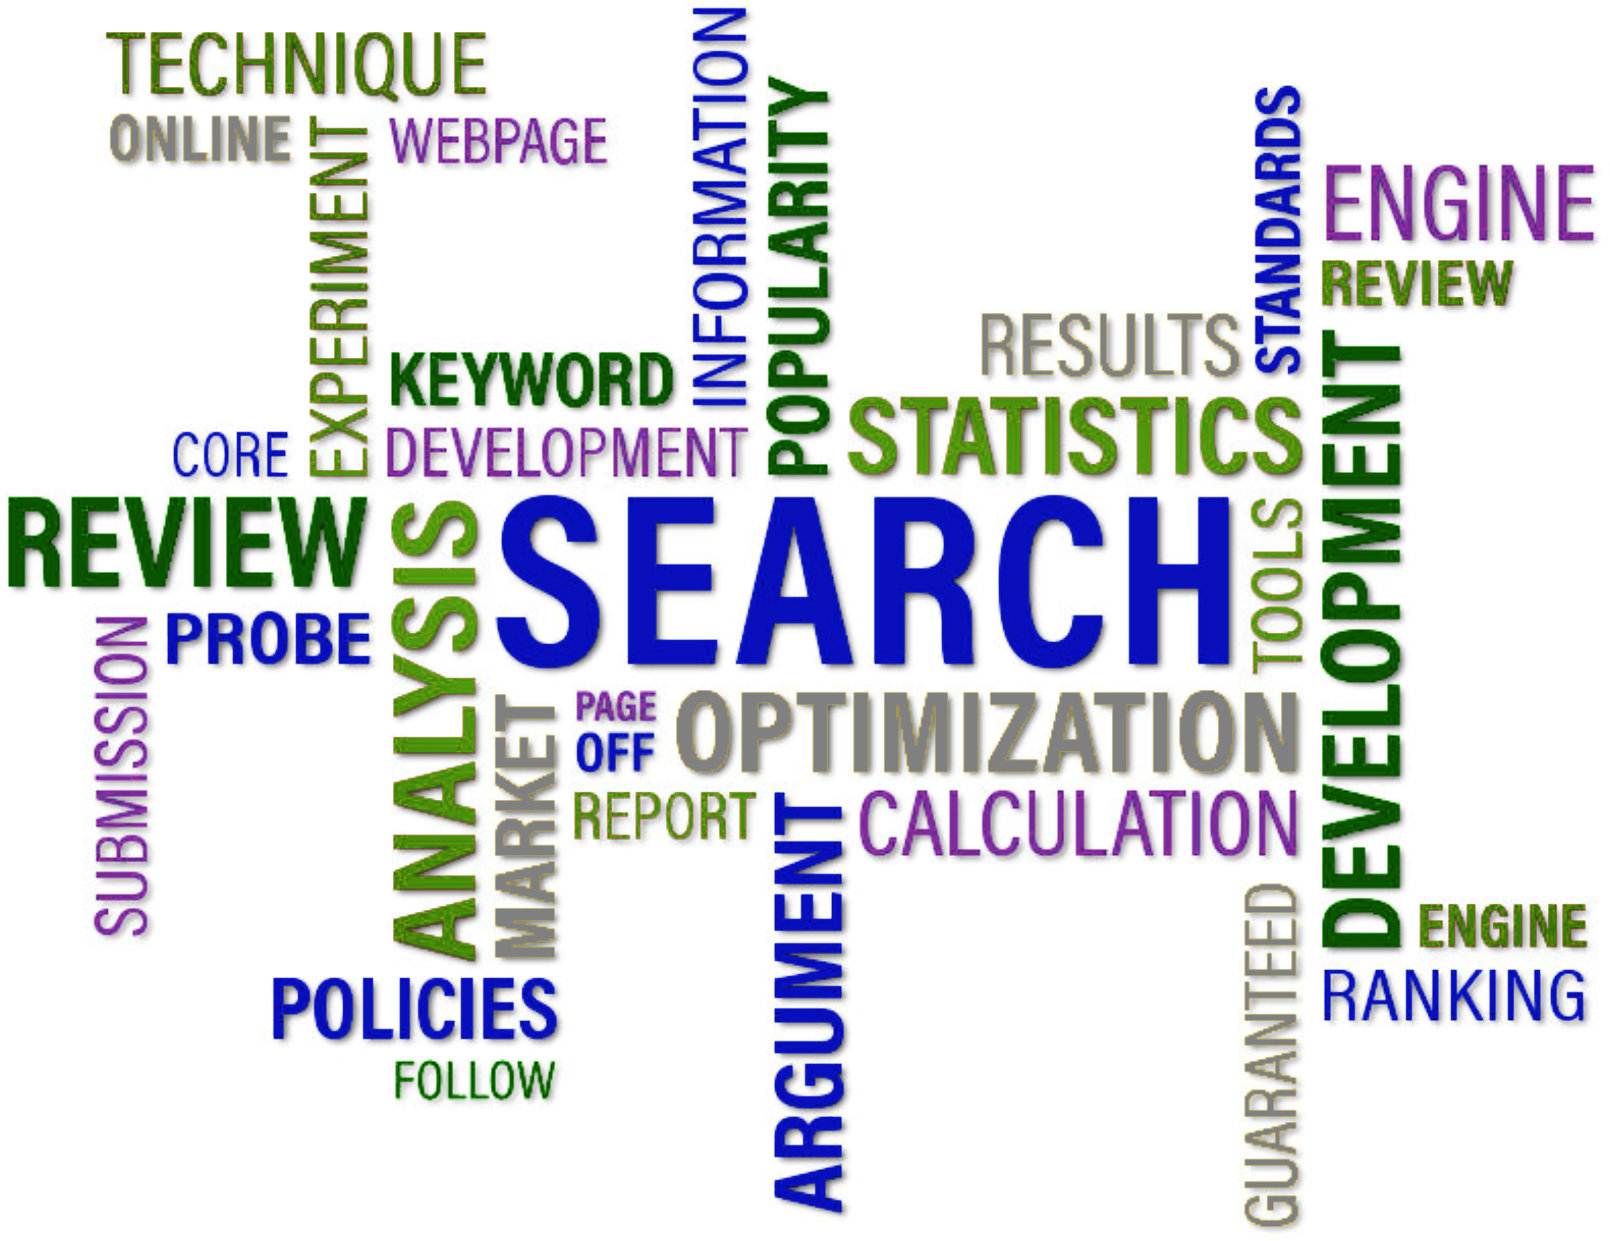 Search Engine Optimization Word Art - Analysis, Information, Popularity, Online, Technique, Review, Ranking, Report, Market